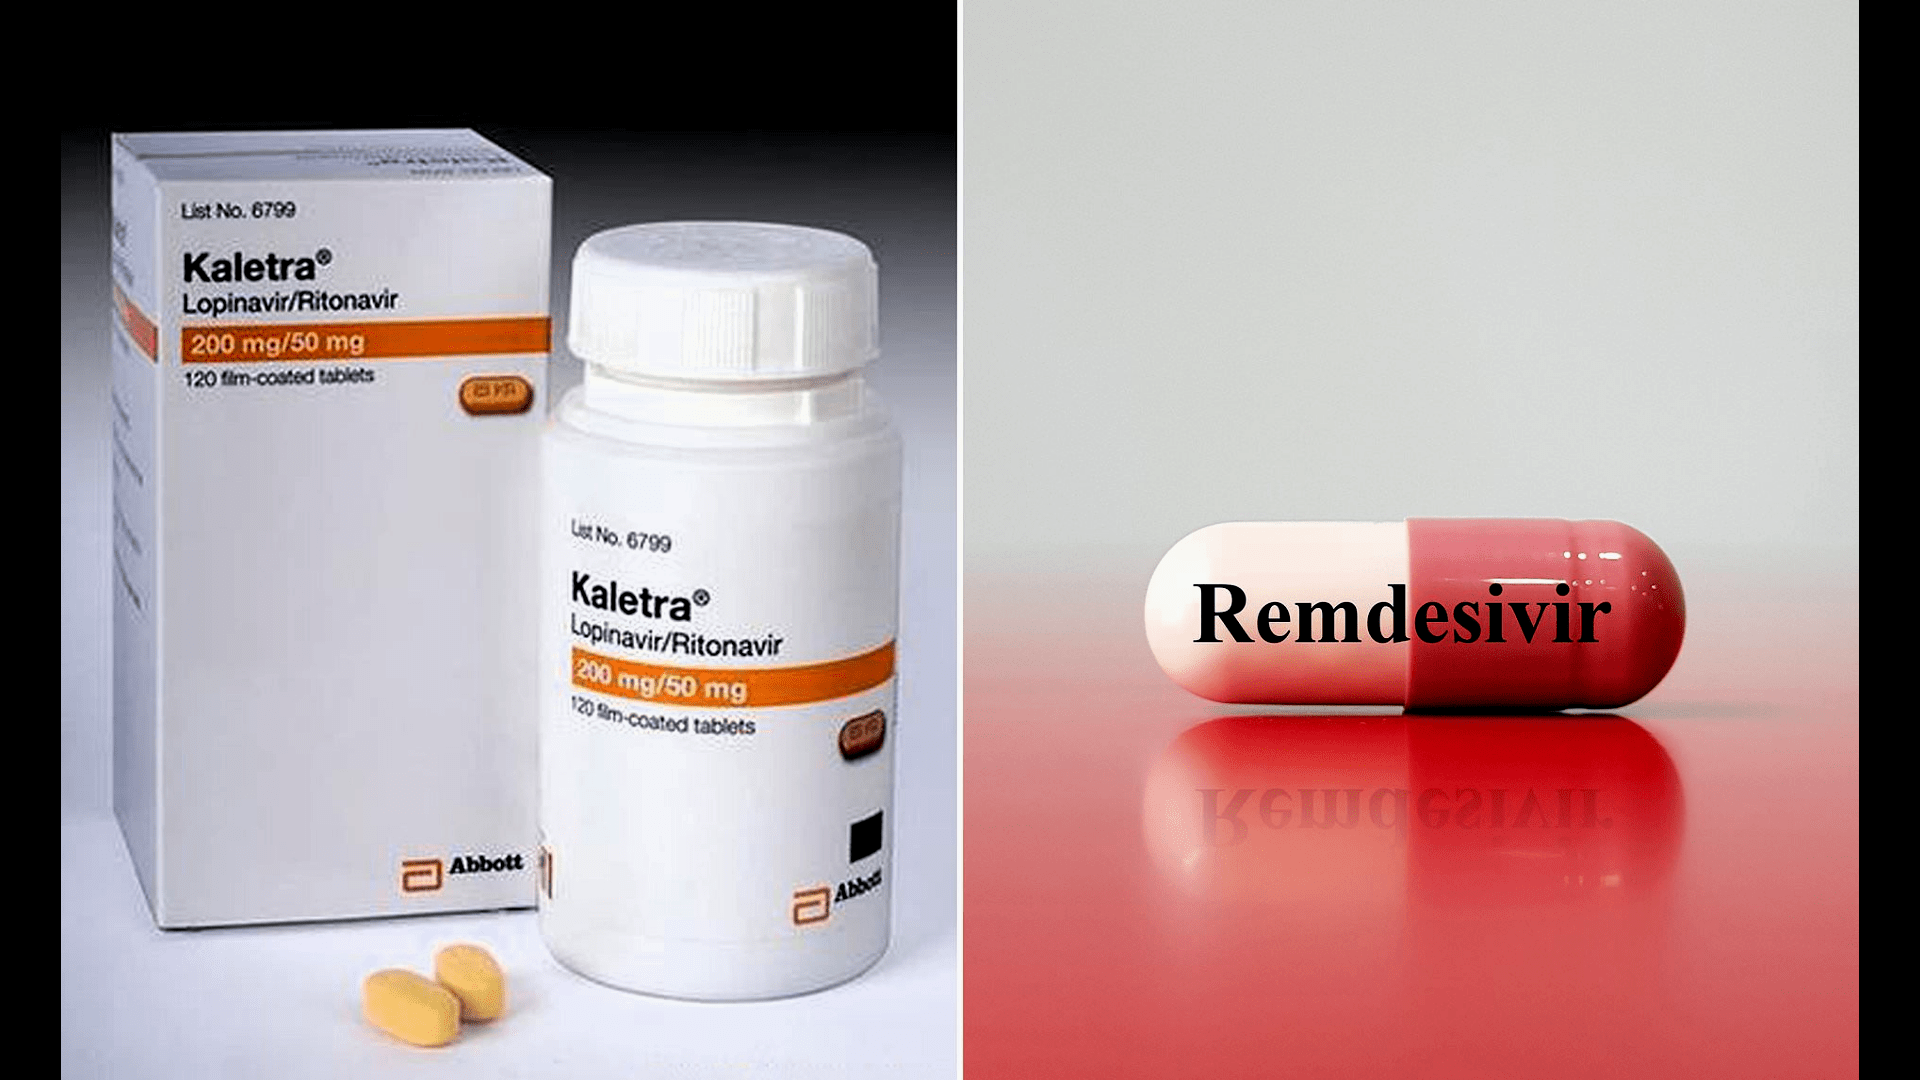 What is Remdesivir Used For